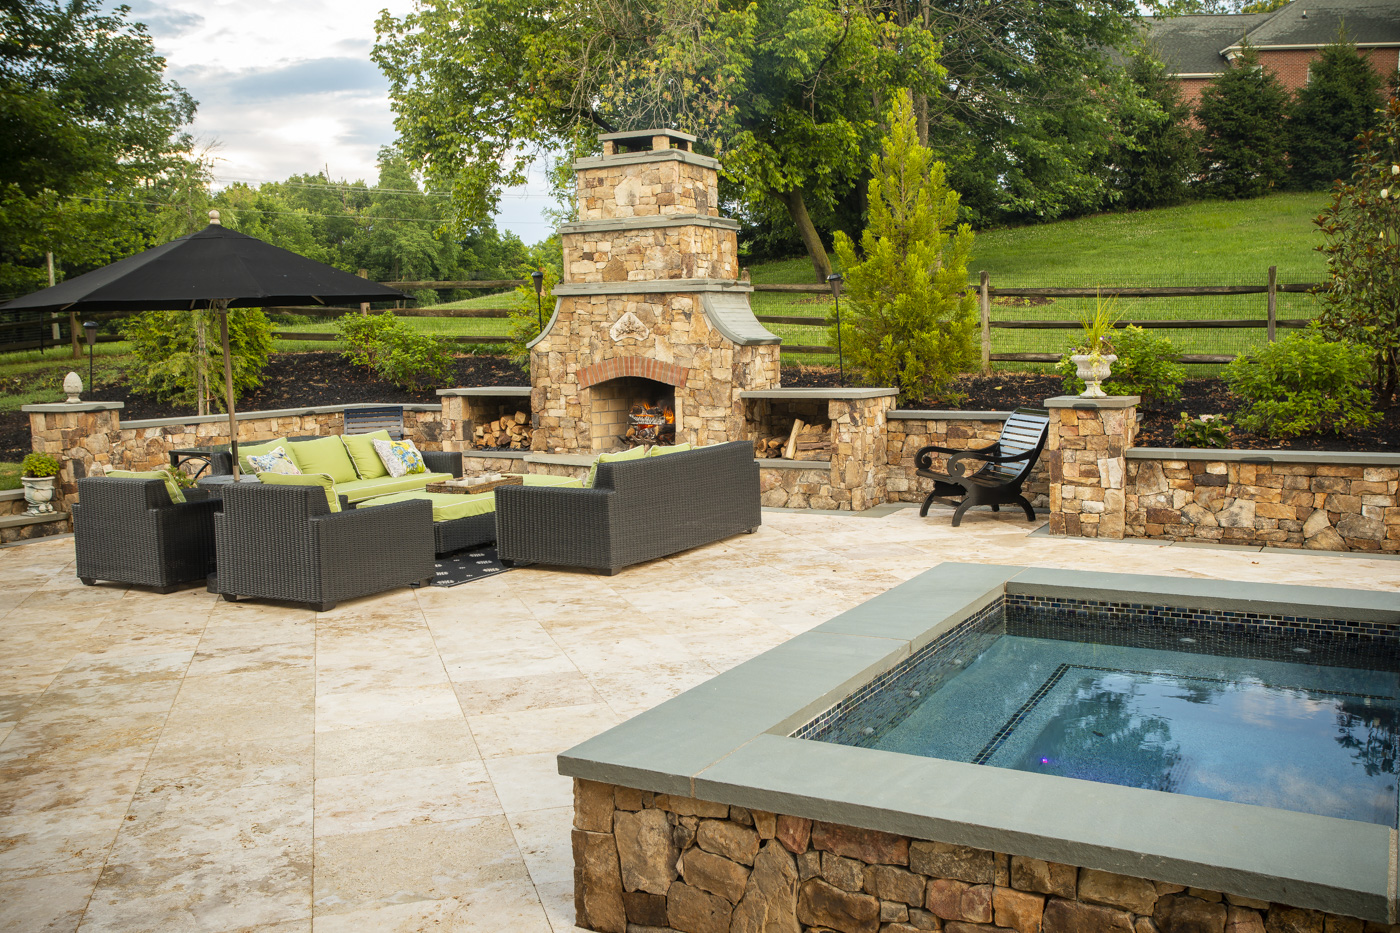 outdoor fireplace surrounded by shrubs